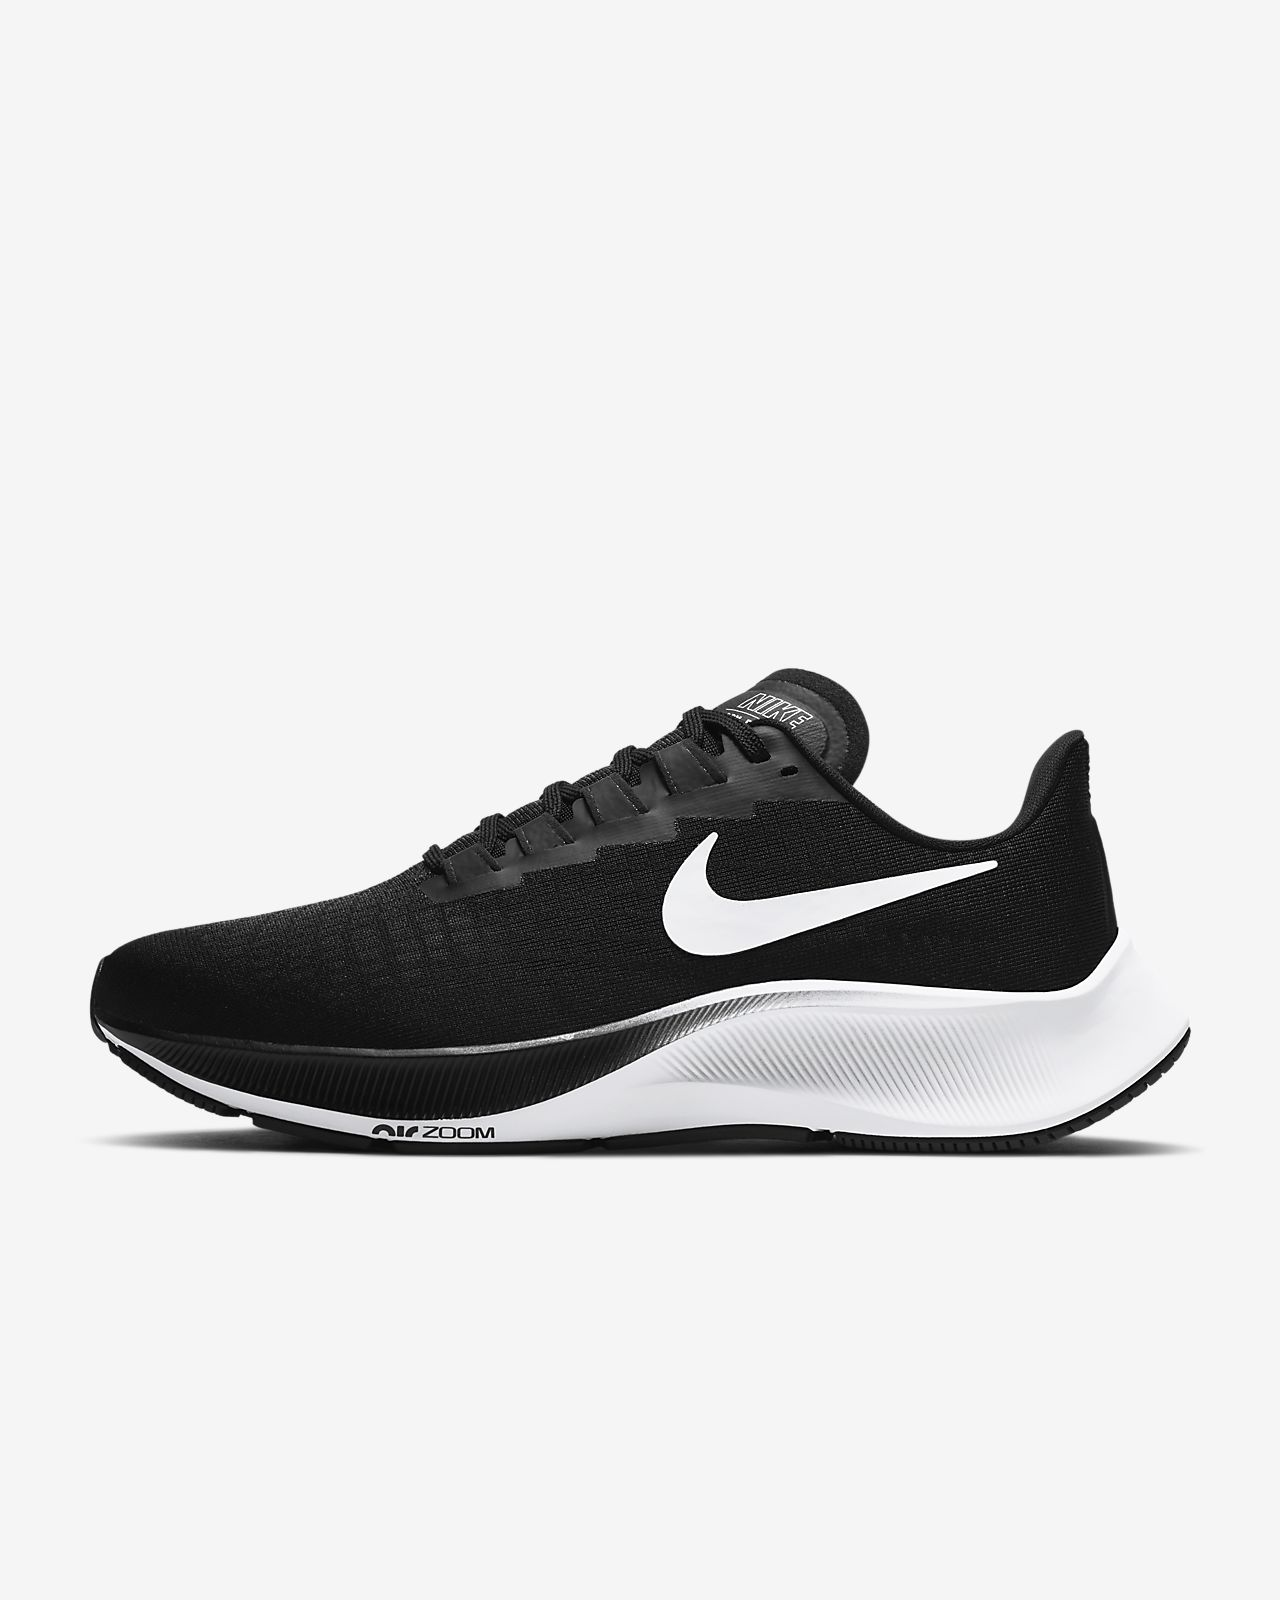 Nike Air Zoom Pegasus 37 Women's Running Shoe (Wide)